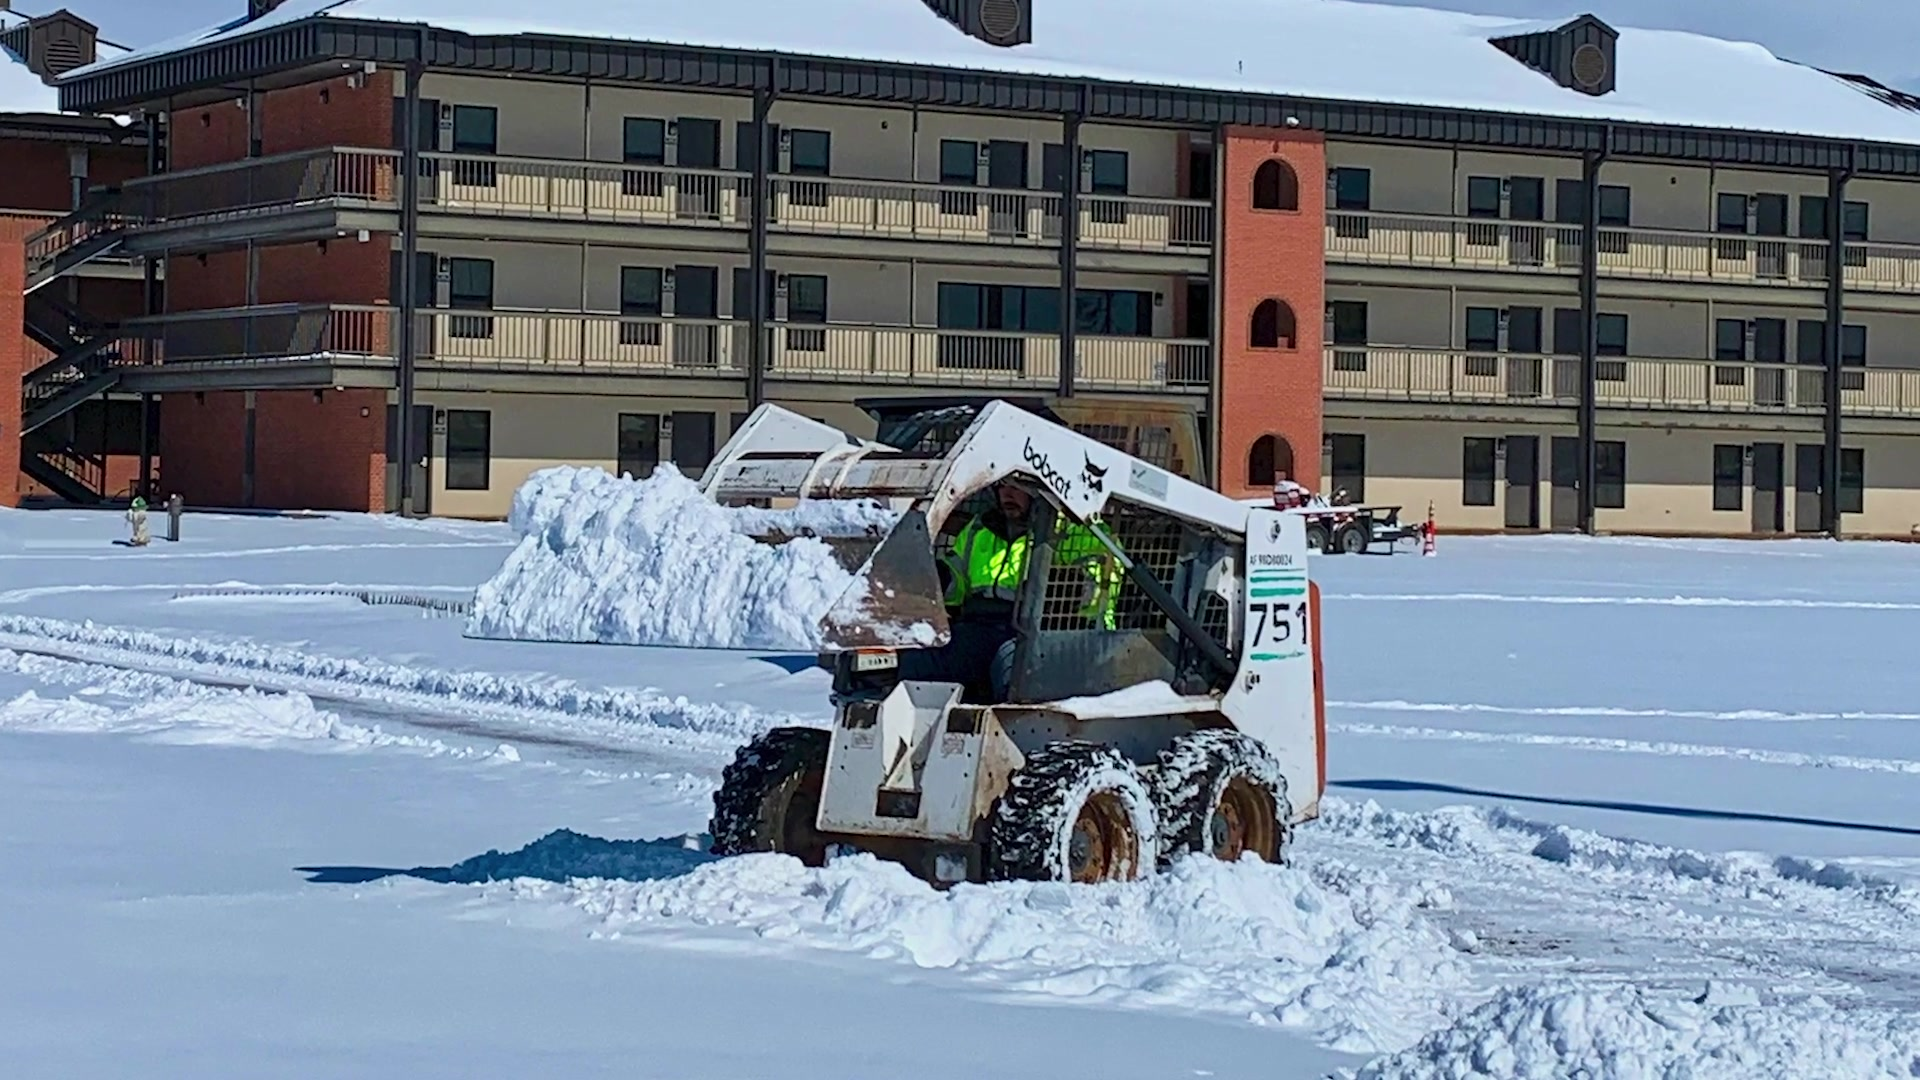 Goodfellow AFB and the San Angelo community broke multiple records with historic snowfall (10 inches) and record low temperatures over the weekend. Members from the 17th Civil Engineer Squadron conducted operations to clear the snow and ice off the roads and troop-walks to ensure safe travel across the base.   Dorm residents shoveled snow at their buildings.  Goodfellow is working hard to restore its services, recover from this treacherous weather, and resume its training mission.